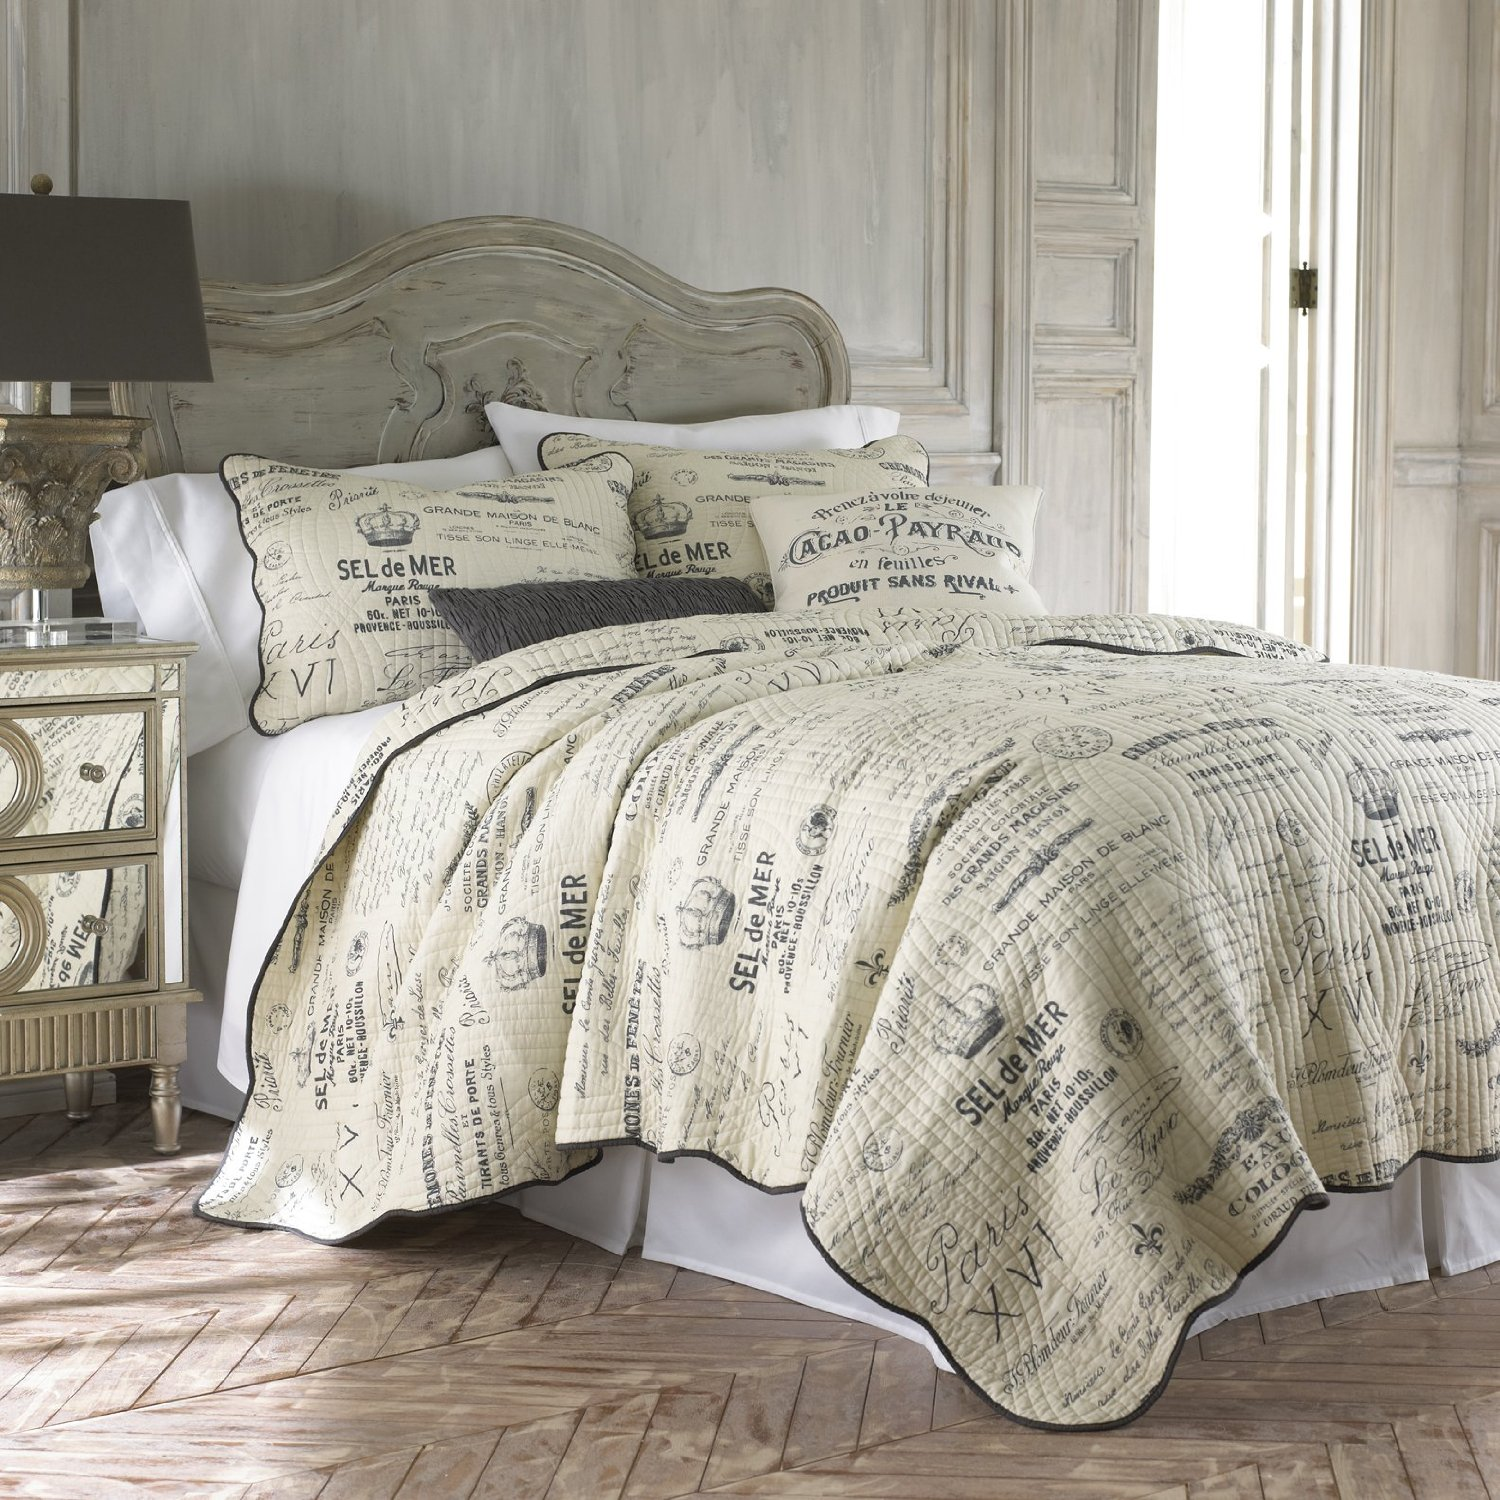 French Script Pillows, Comforters Sets & Themed Bedding